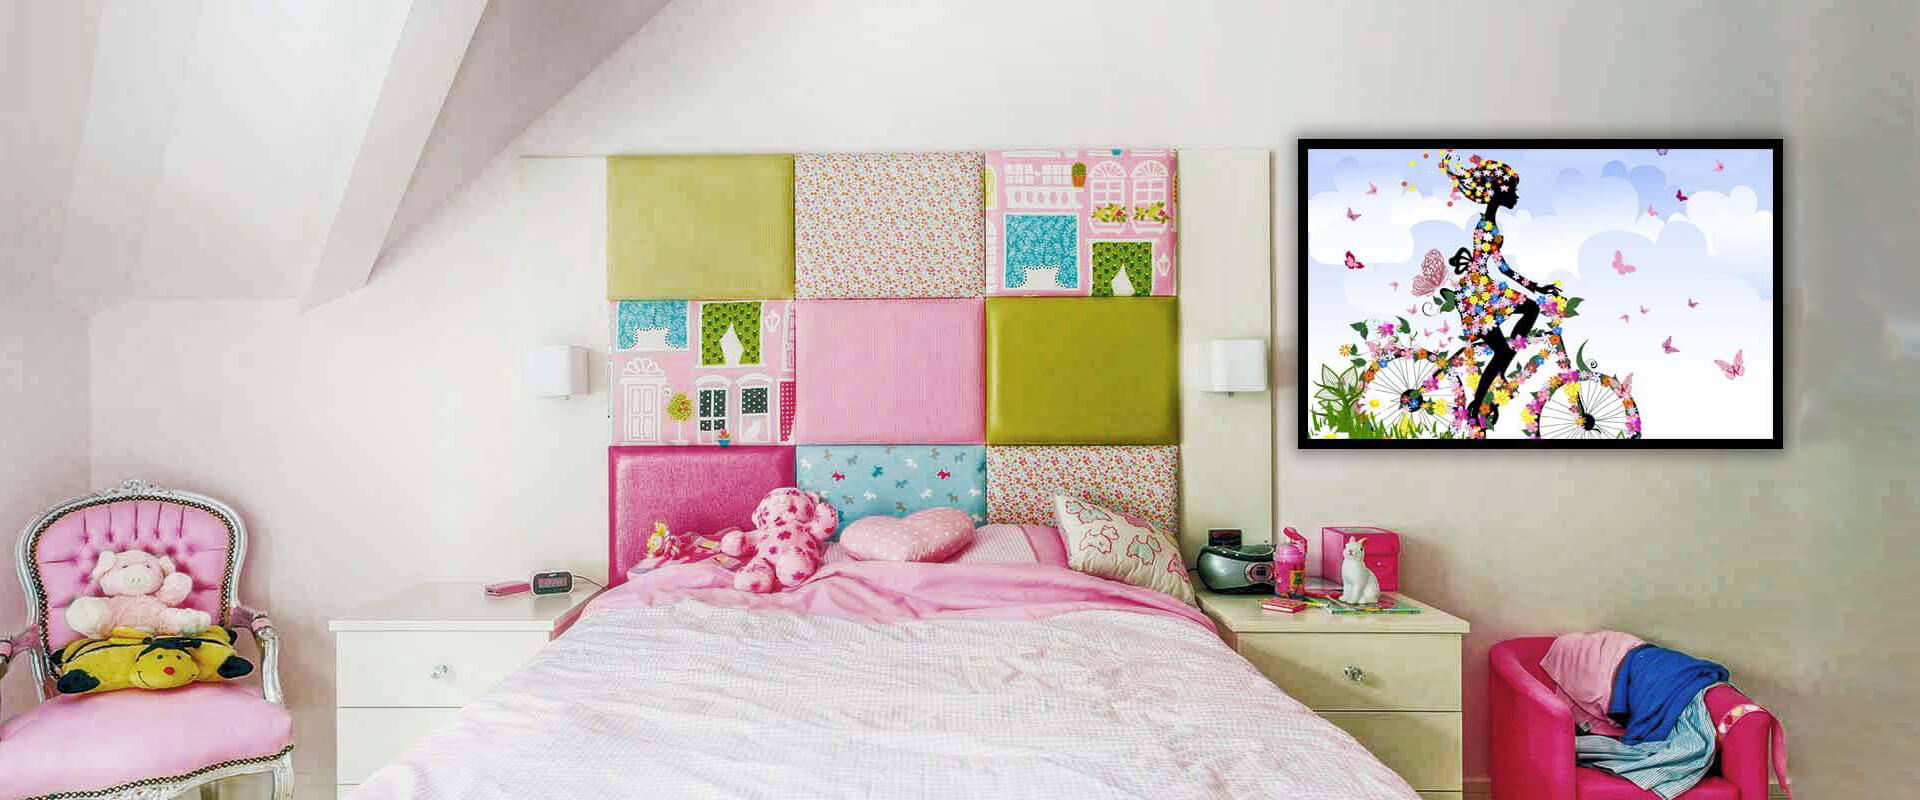 Kidsroom Art Décor | Buy Posters, Frames, Canvas, Digital Art & Large Size Prints